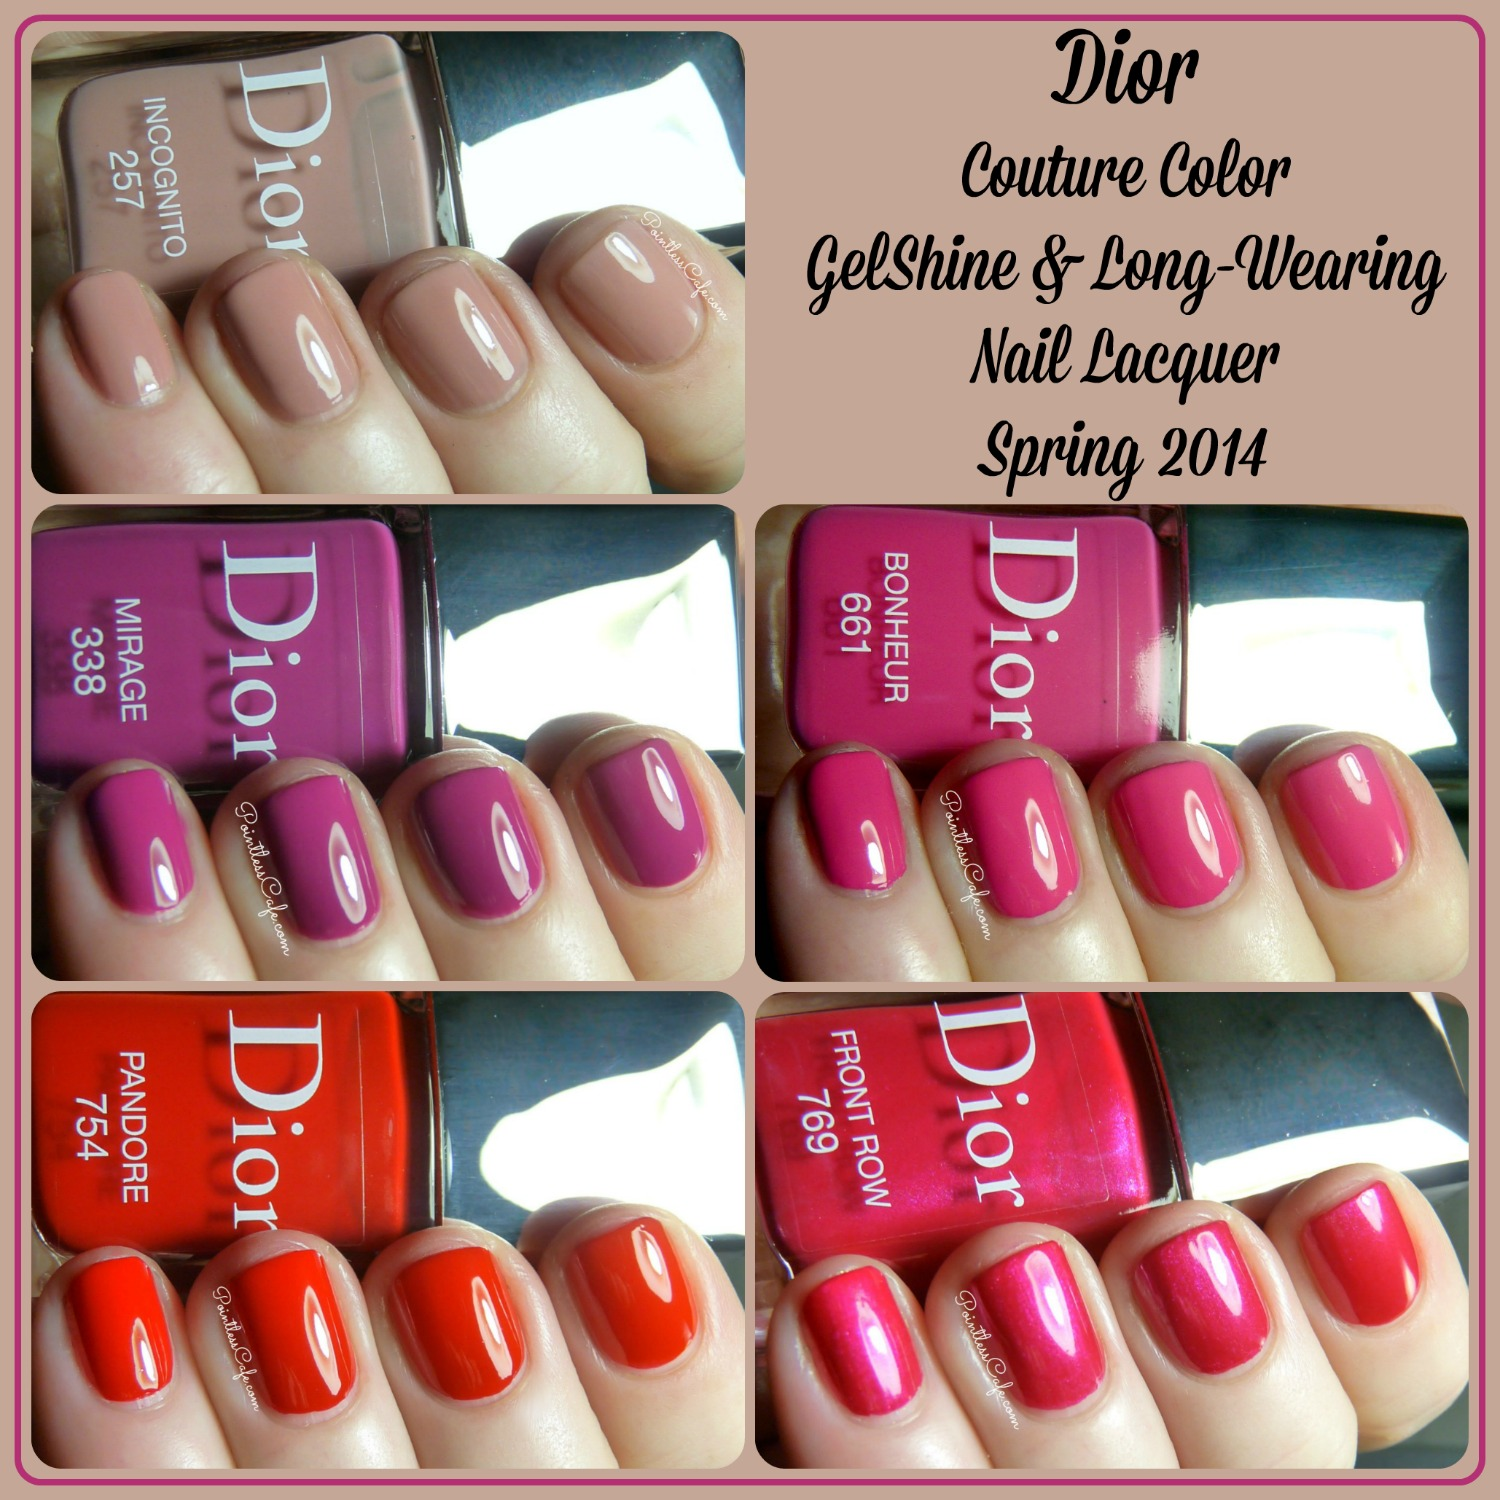 Dior Couture Color Gelshine Long Wearing Nail Lacquer